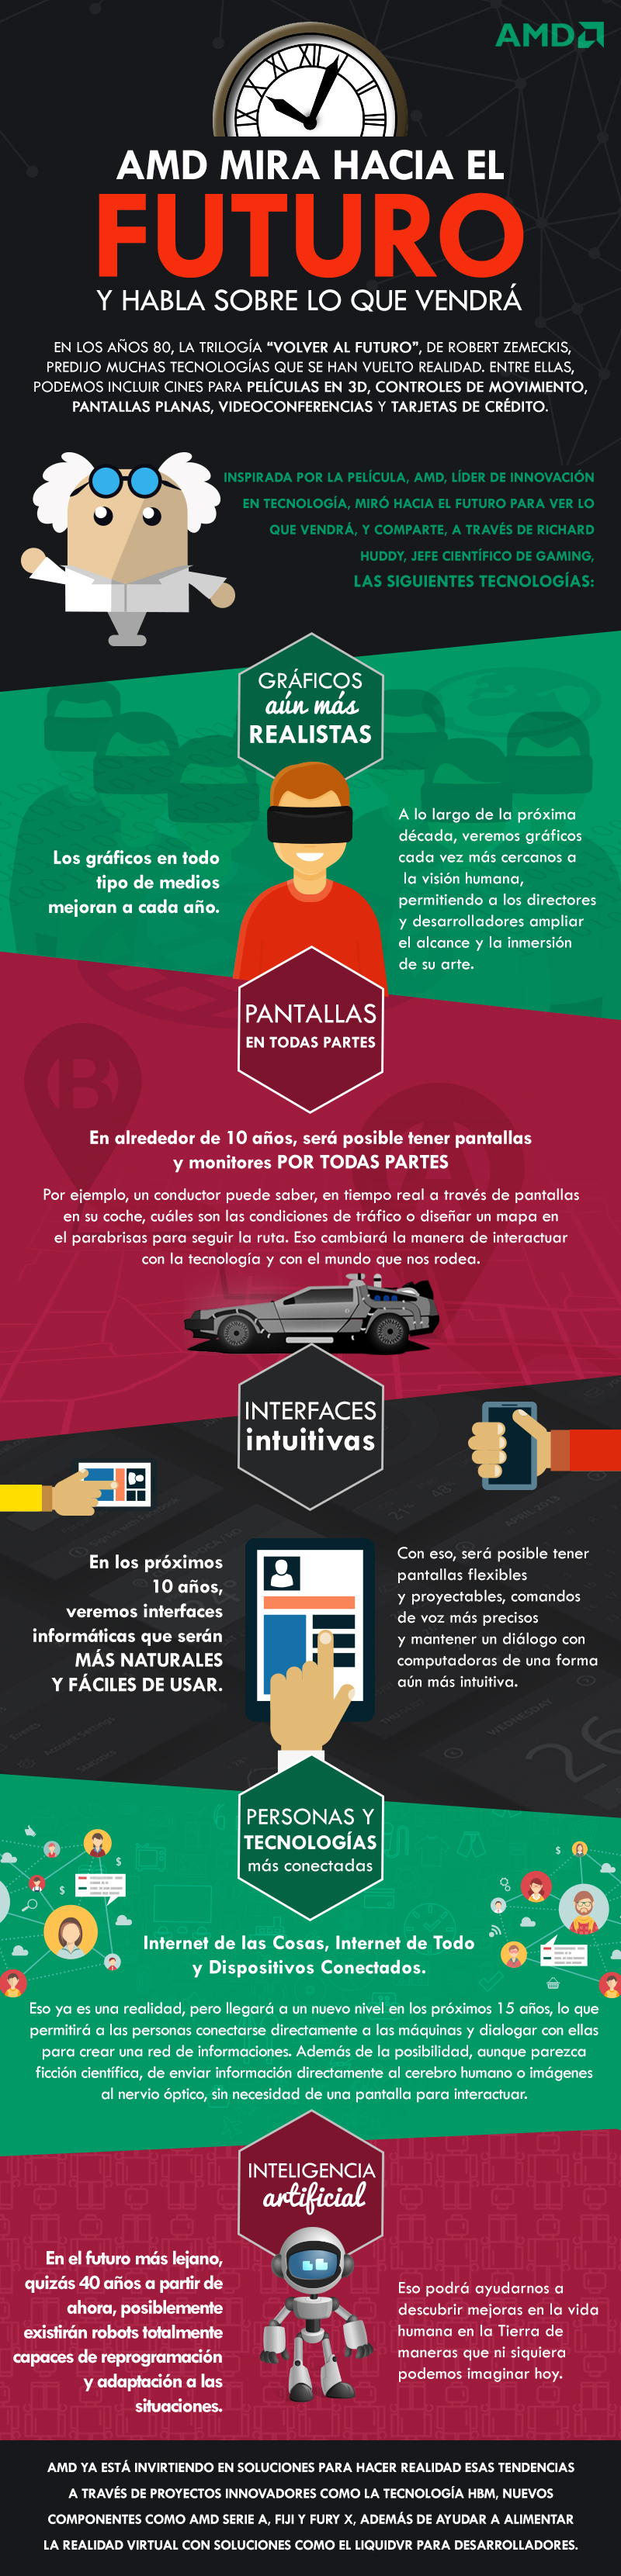 Infografia-Back-future AMD